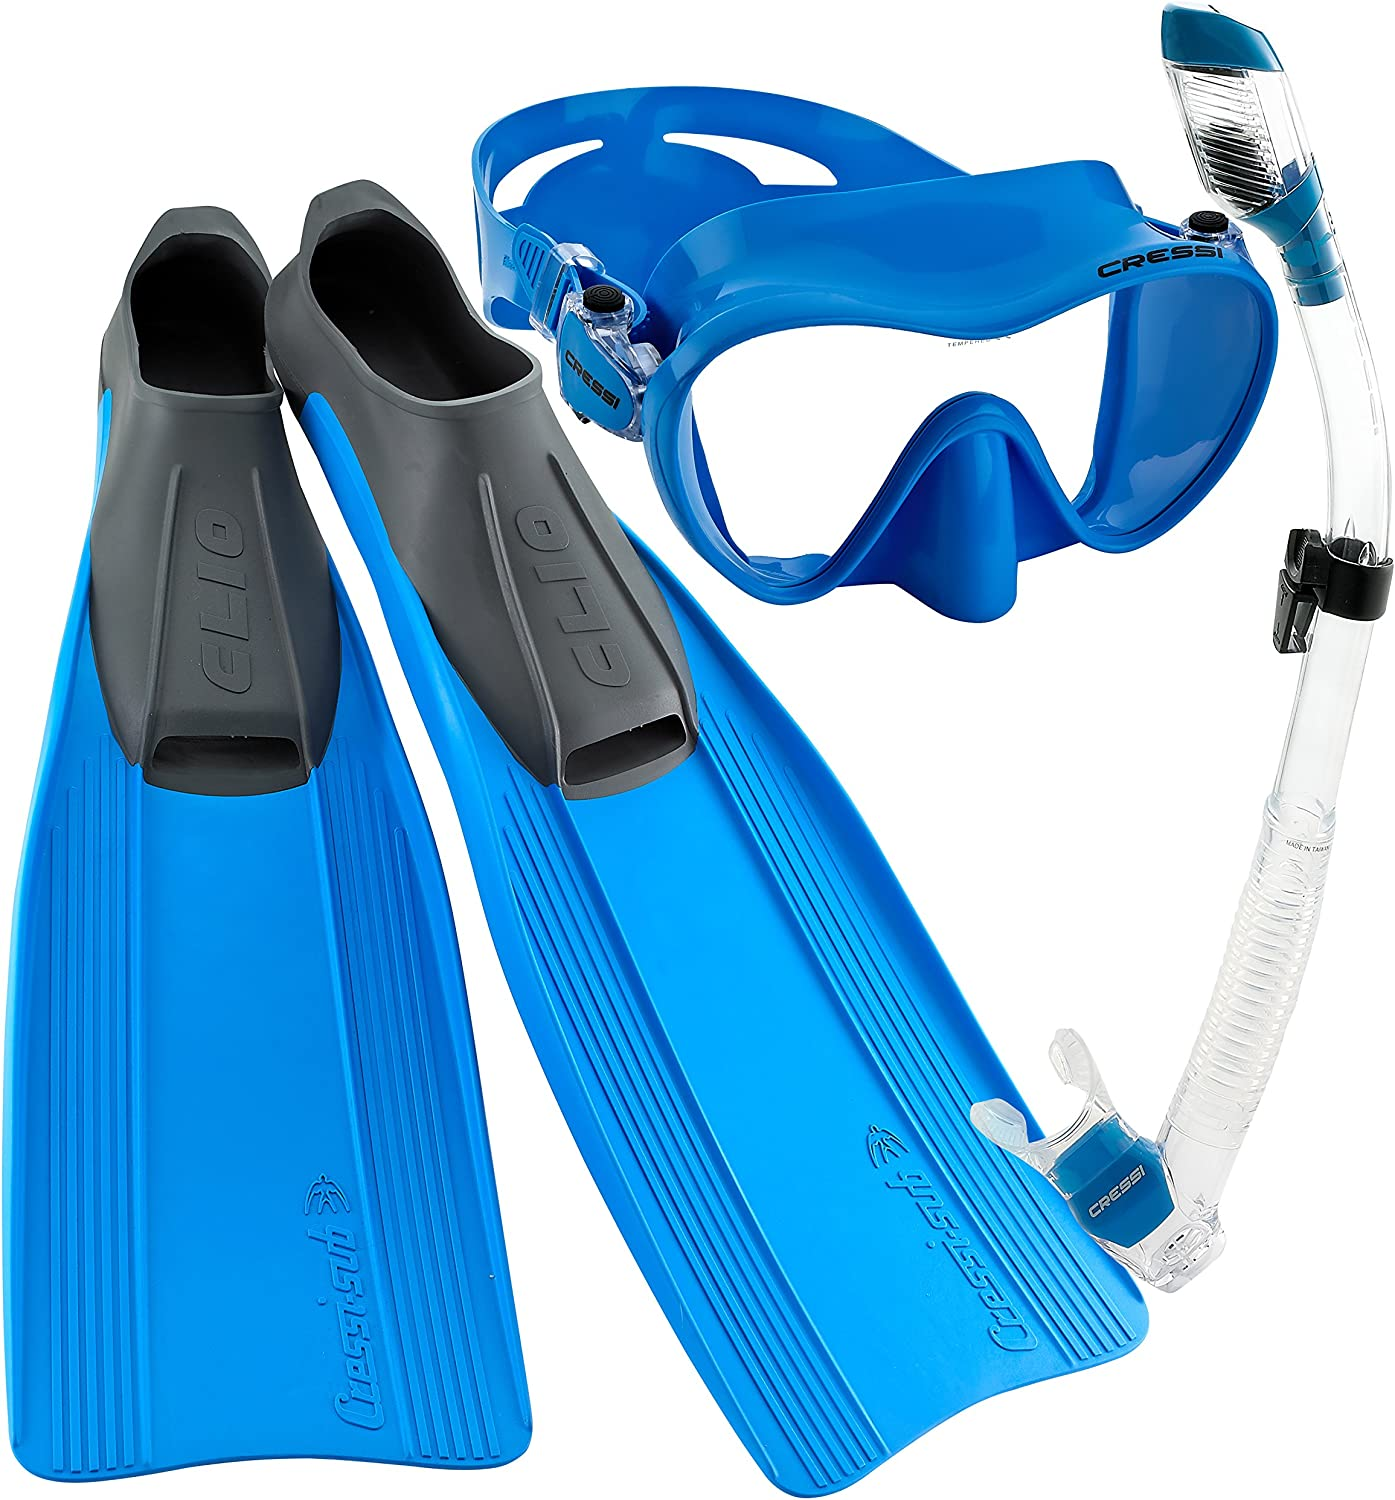 Size 7//8-Size 41//42 Cressi Clio Full Foot Fin Frameless Mask Dry Snorkel Set with Carry Bag Blue